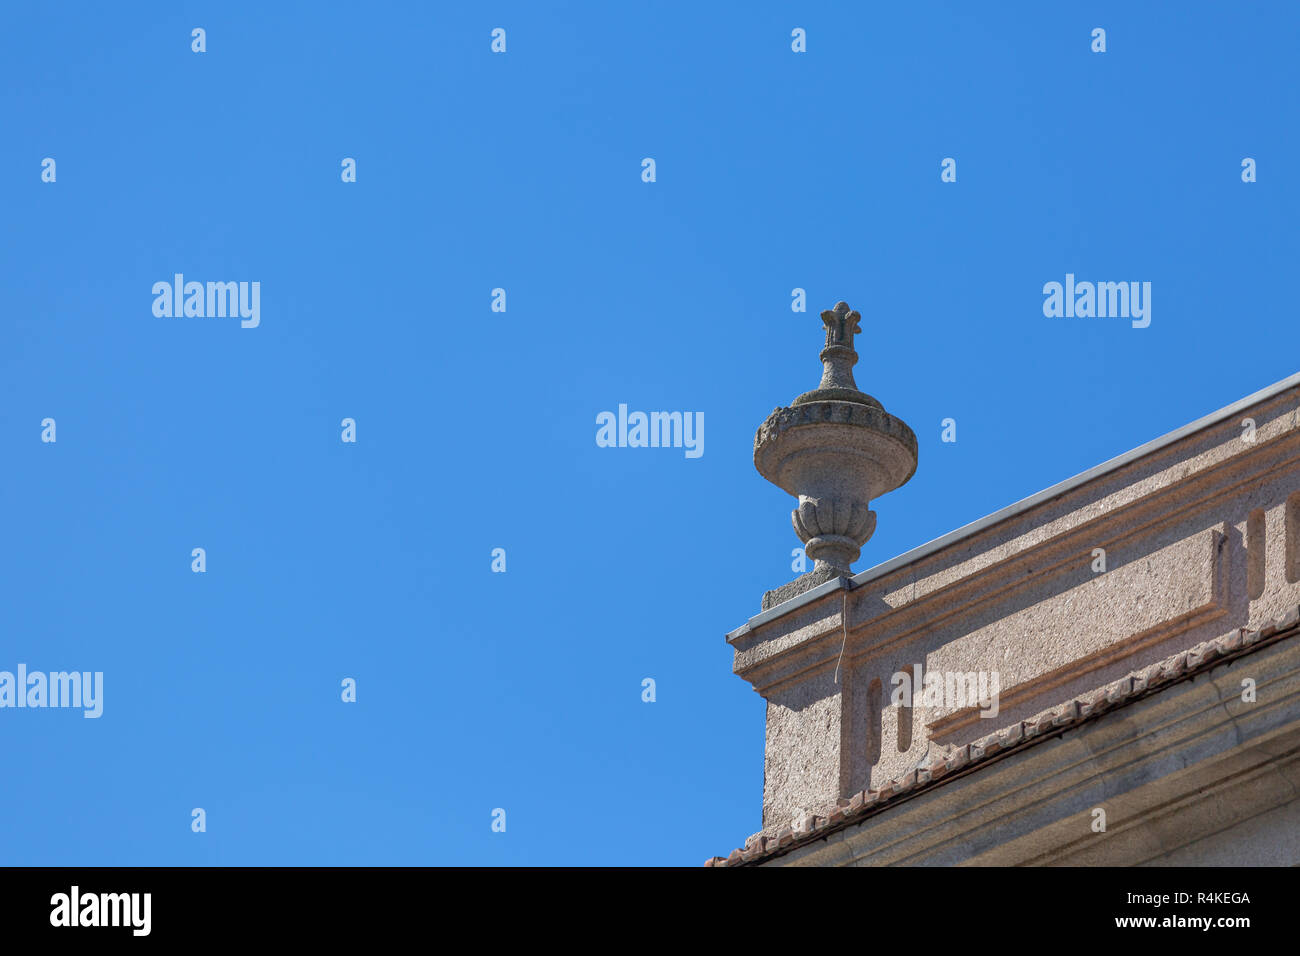 Detail view of pinnacle in traditional Portuguese urban building on Porto city, Portugal - Stock Image